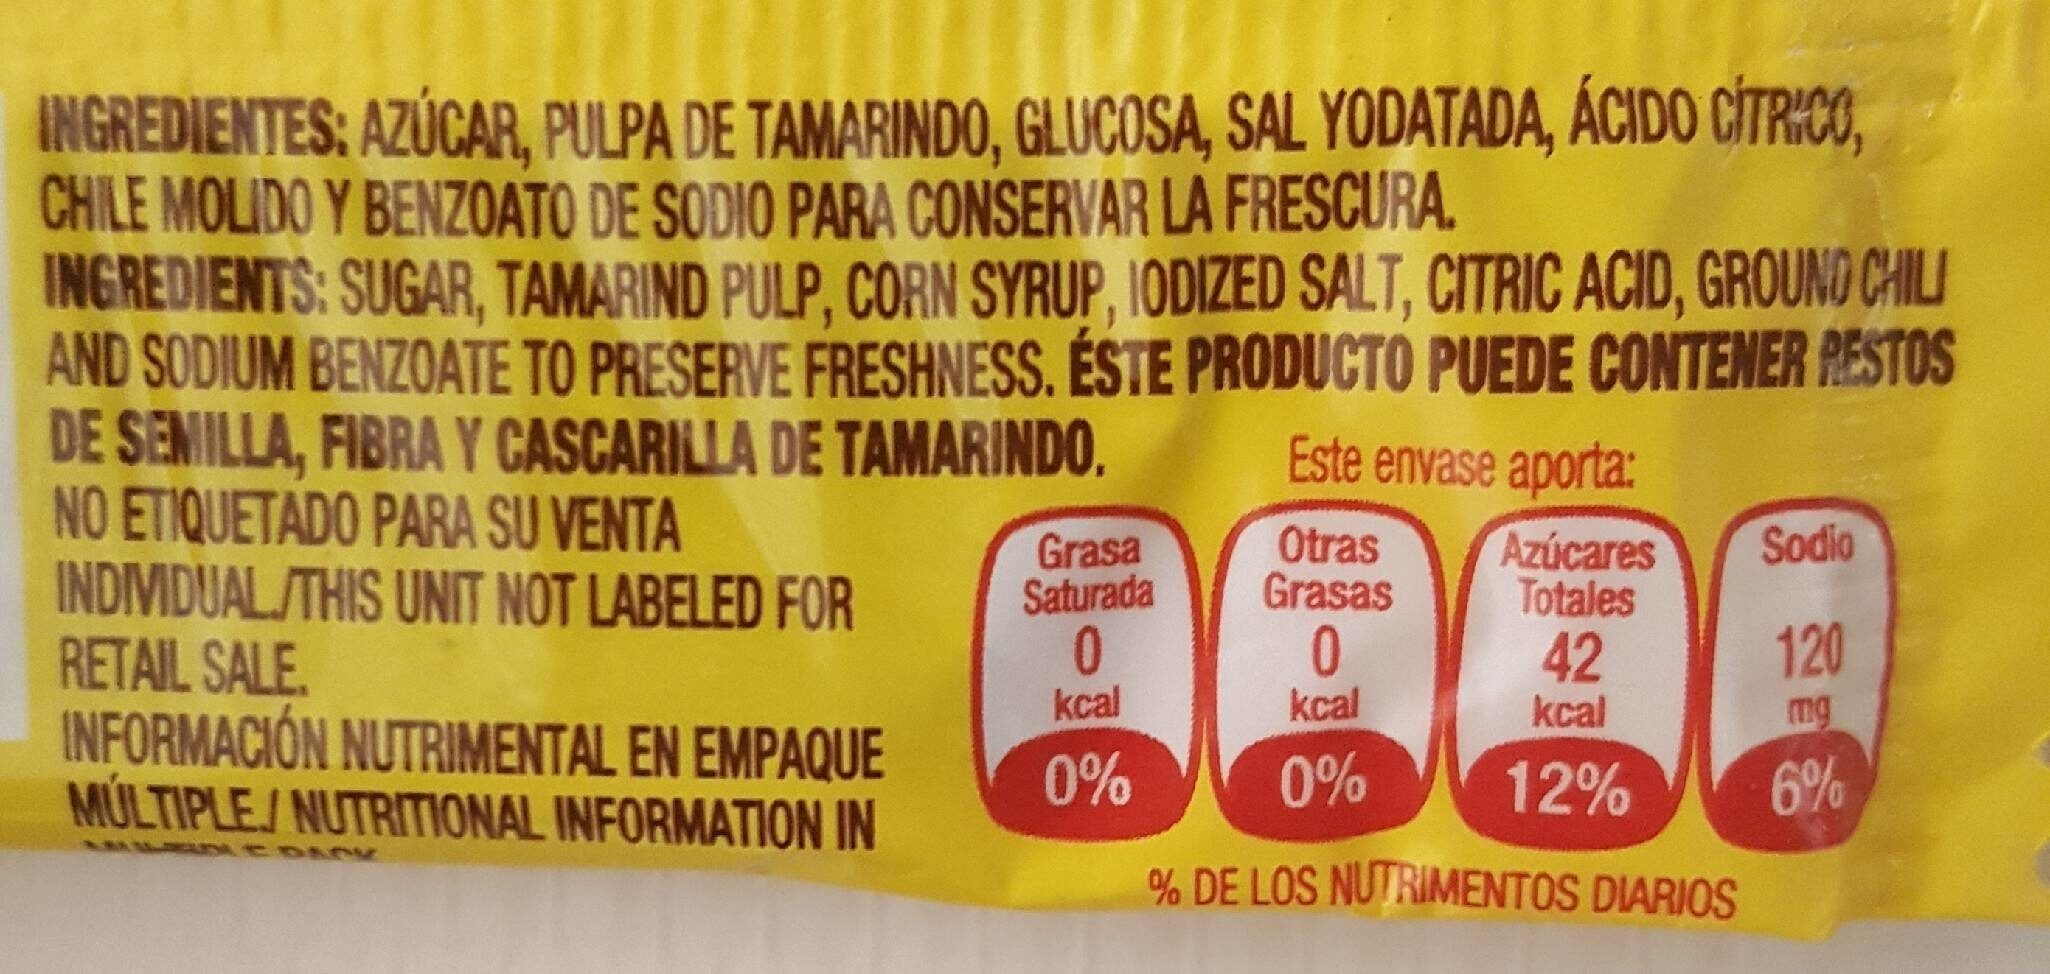 Candy Hot and Salted Tamarind Pulp - Informations nutritionnelles - fr